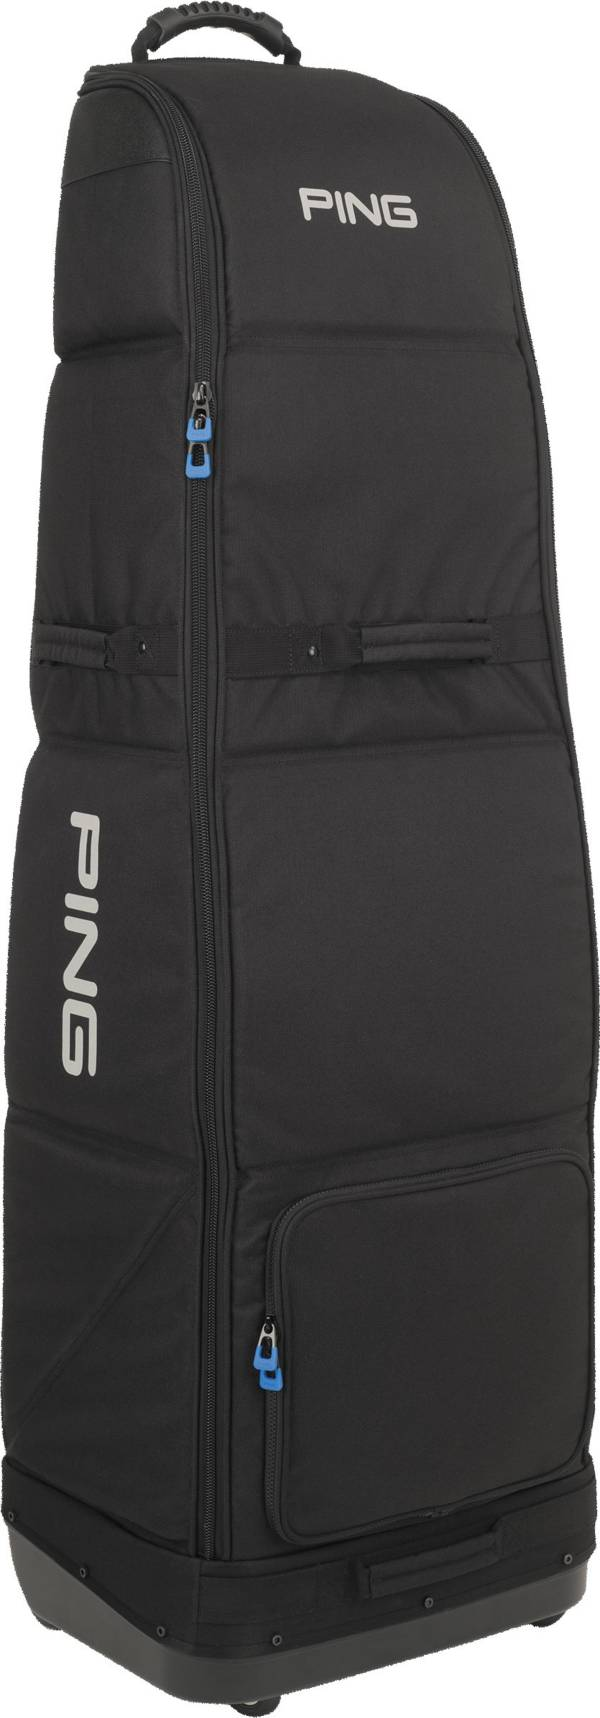 PING Rolling Travel Cover product image